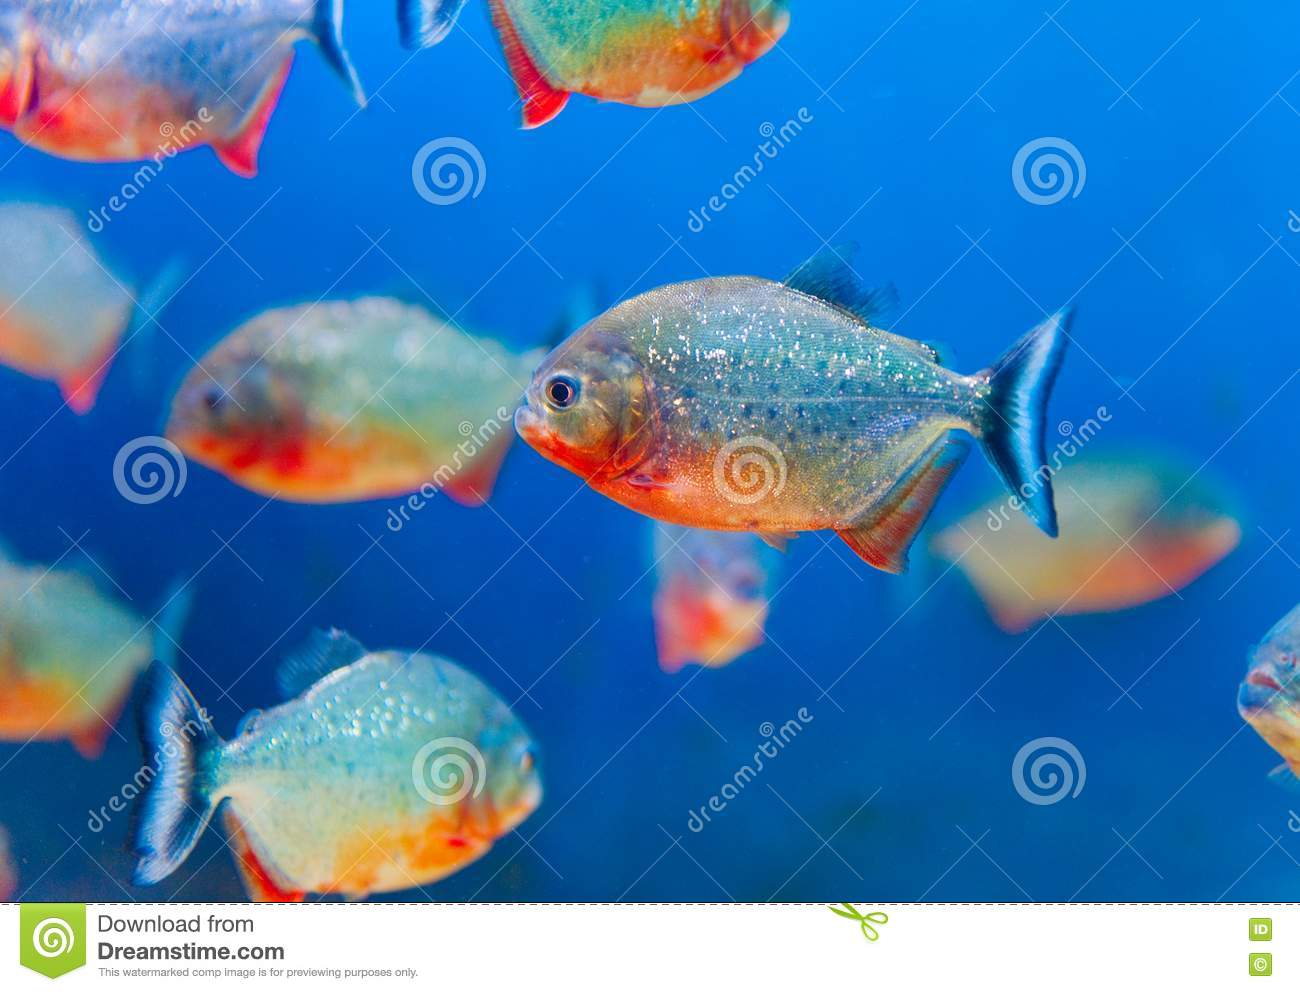 Colorful fish aquarium stock photo image of hobbies for Colorful freshwater fish